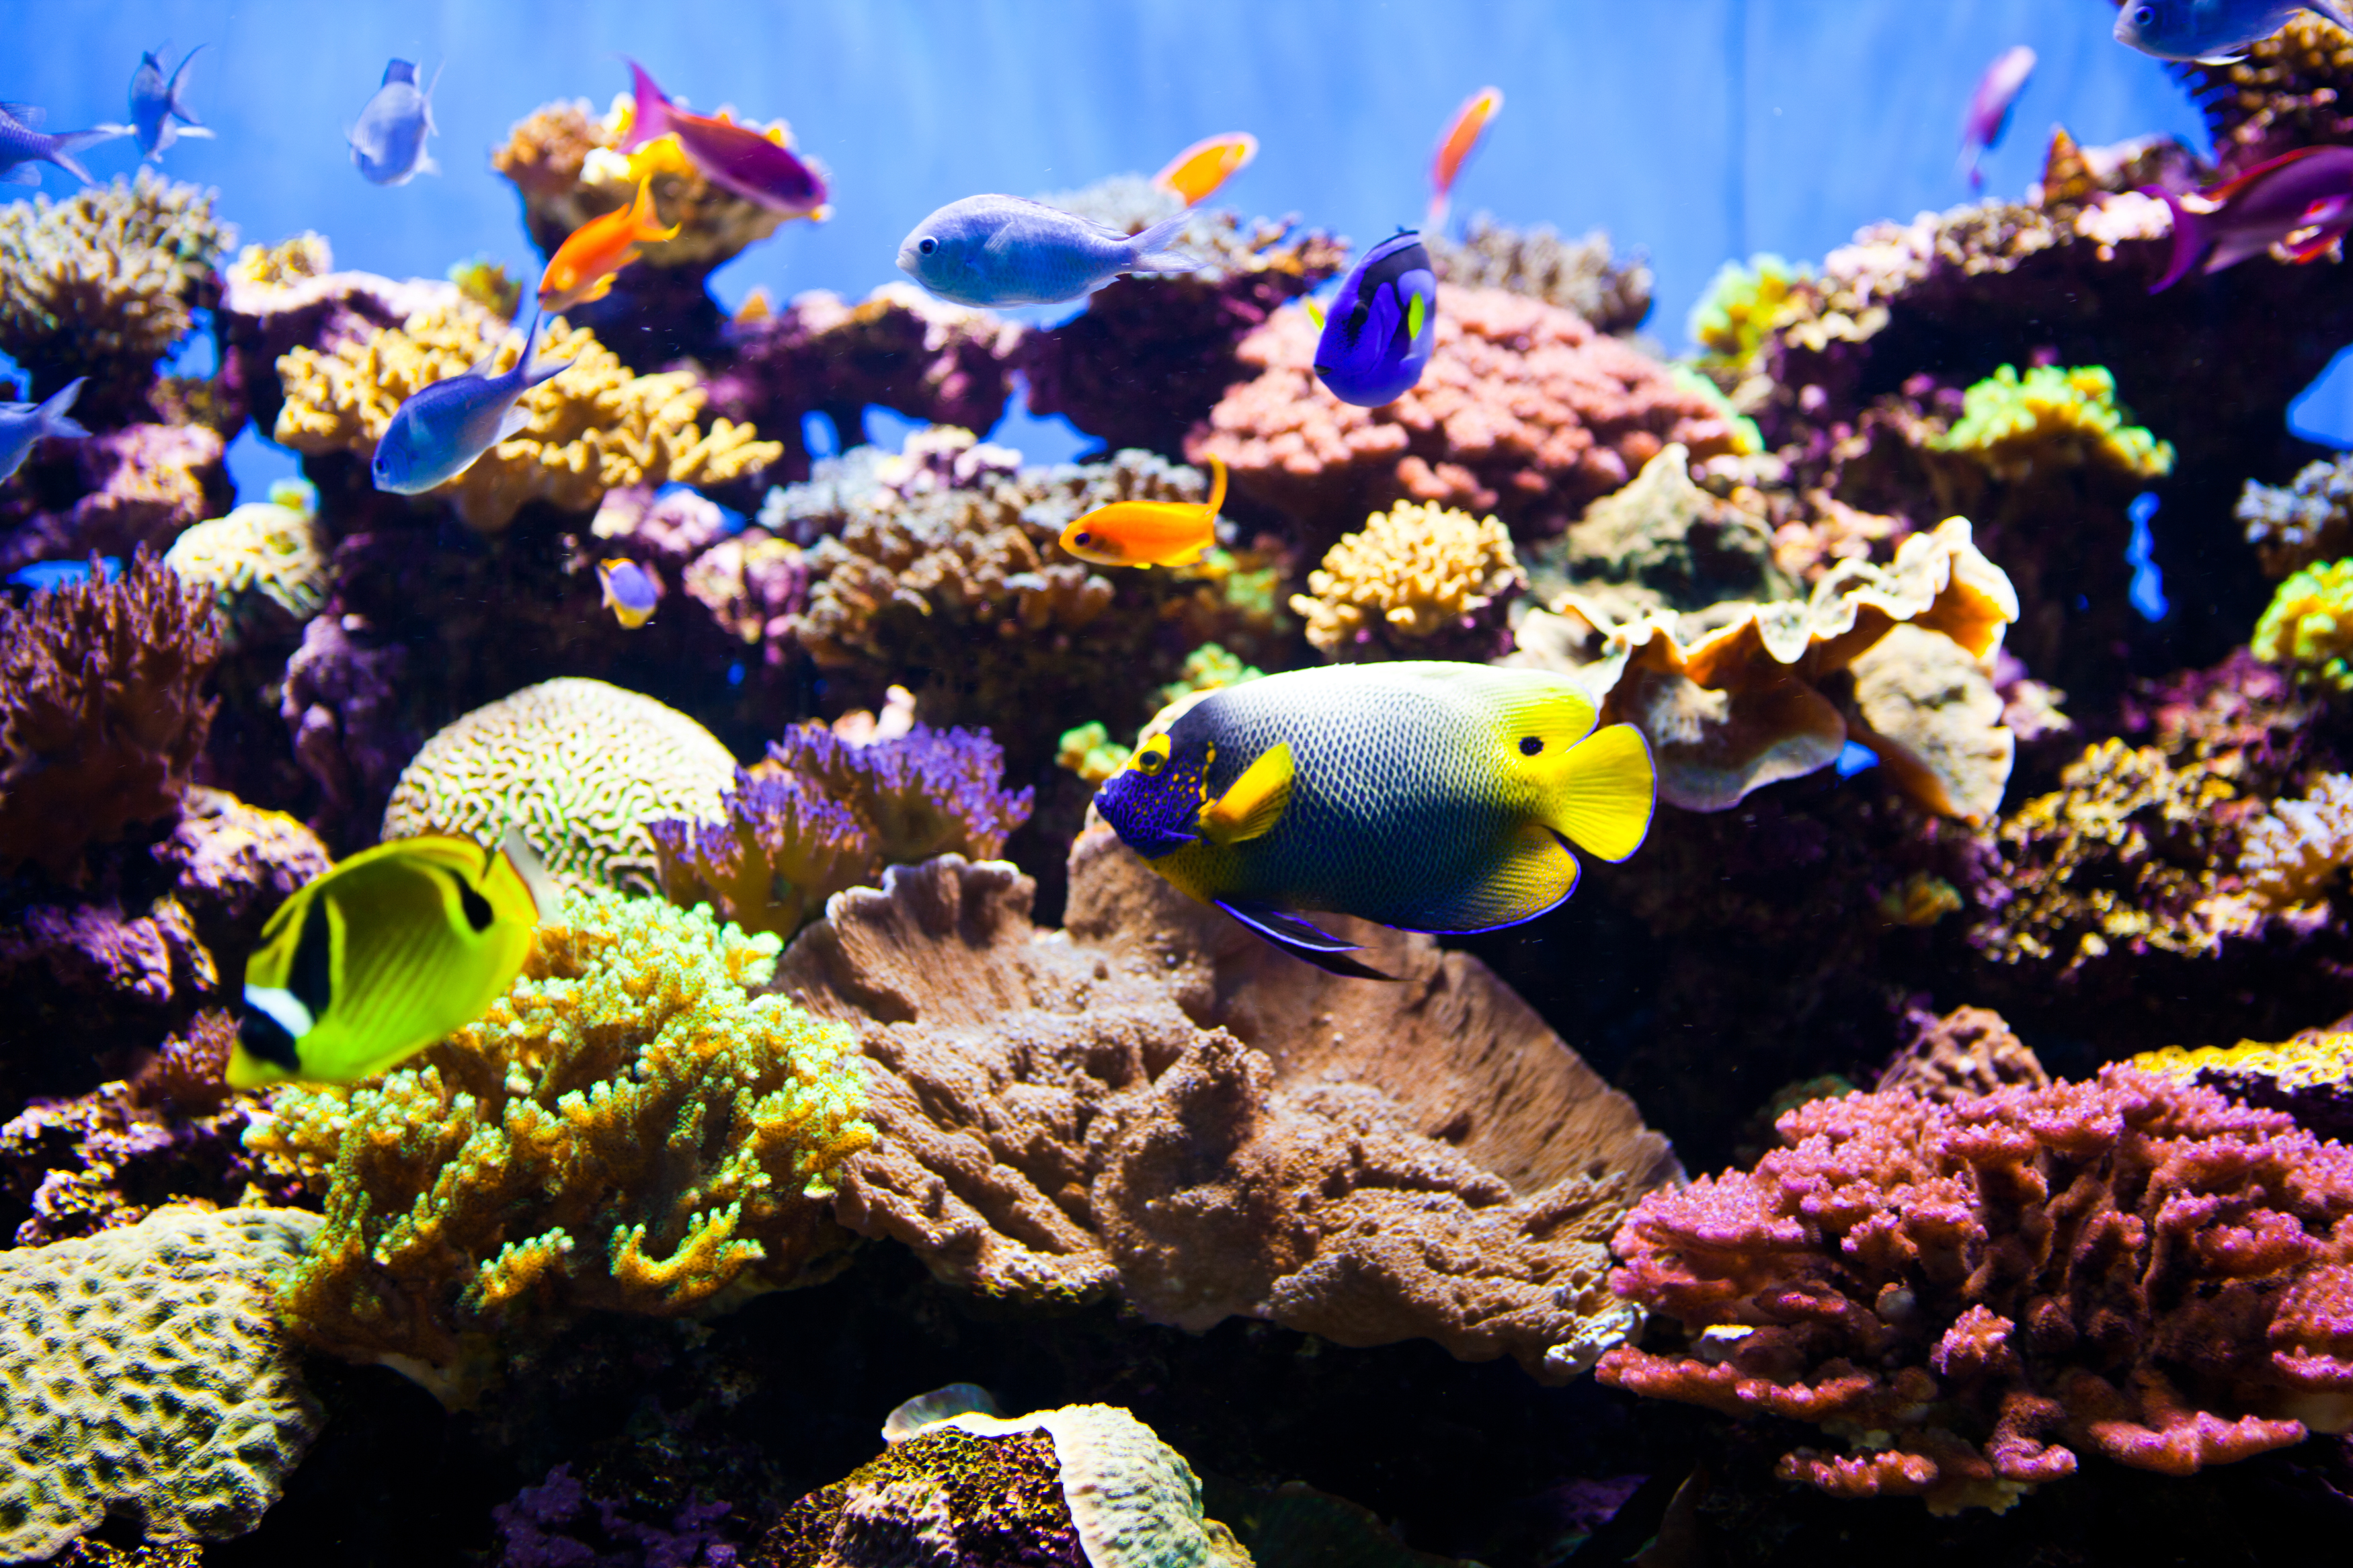 Abundance of tropical fish in an aquarium. Very colorful ocean fish with live coral.